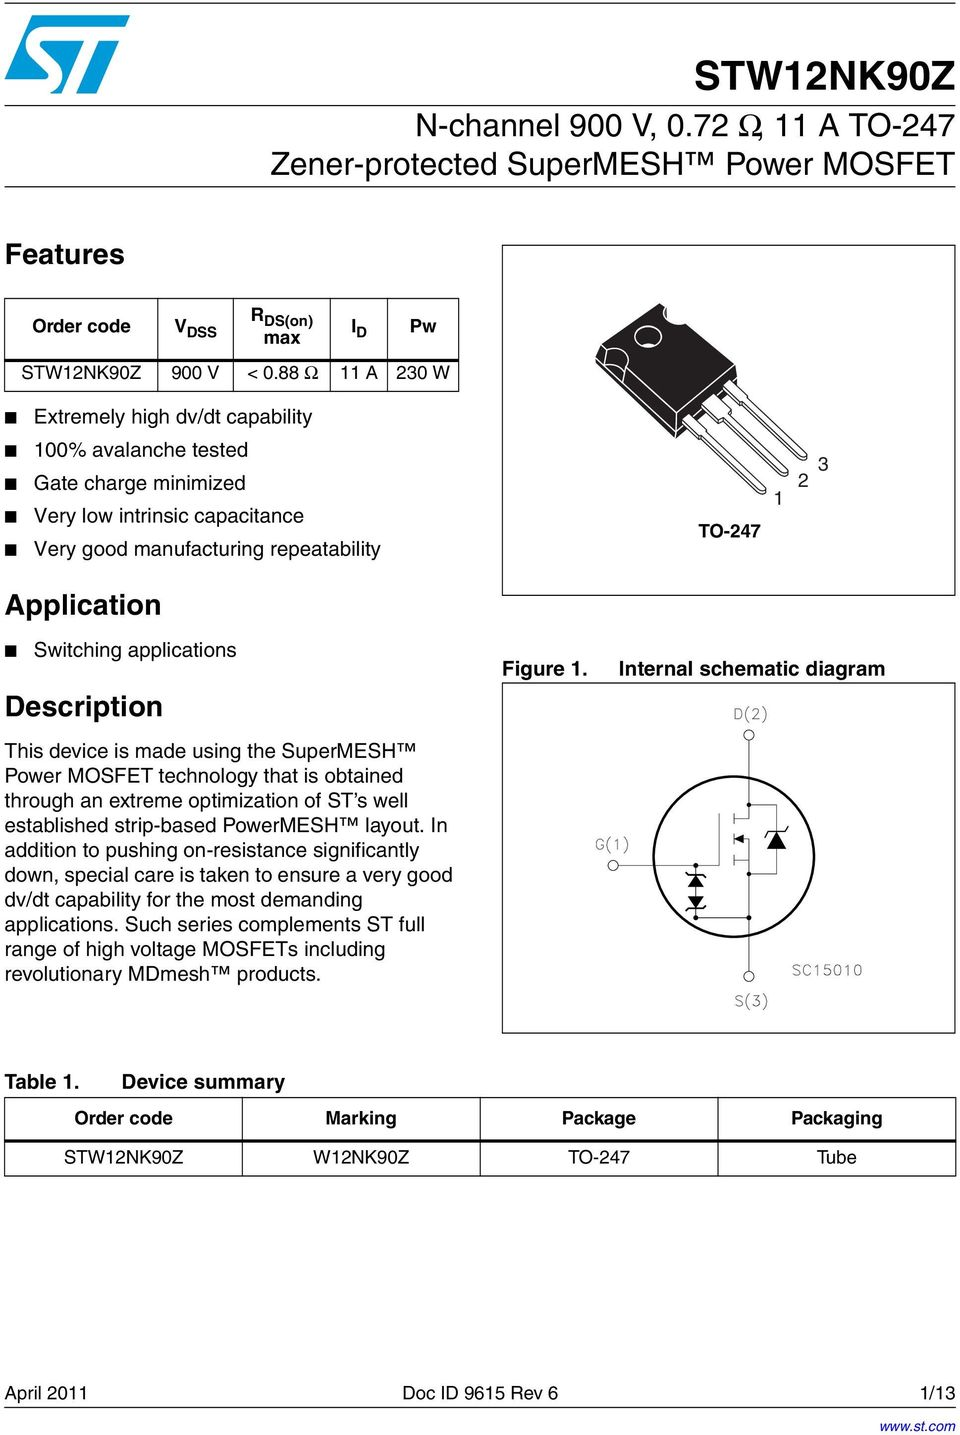 applications Description This device is made using the SuperMESH Power MOSFET technology that is obtained through an extreme optimization of ST s well established strip-based PowerMESH layout.